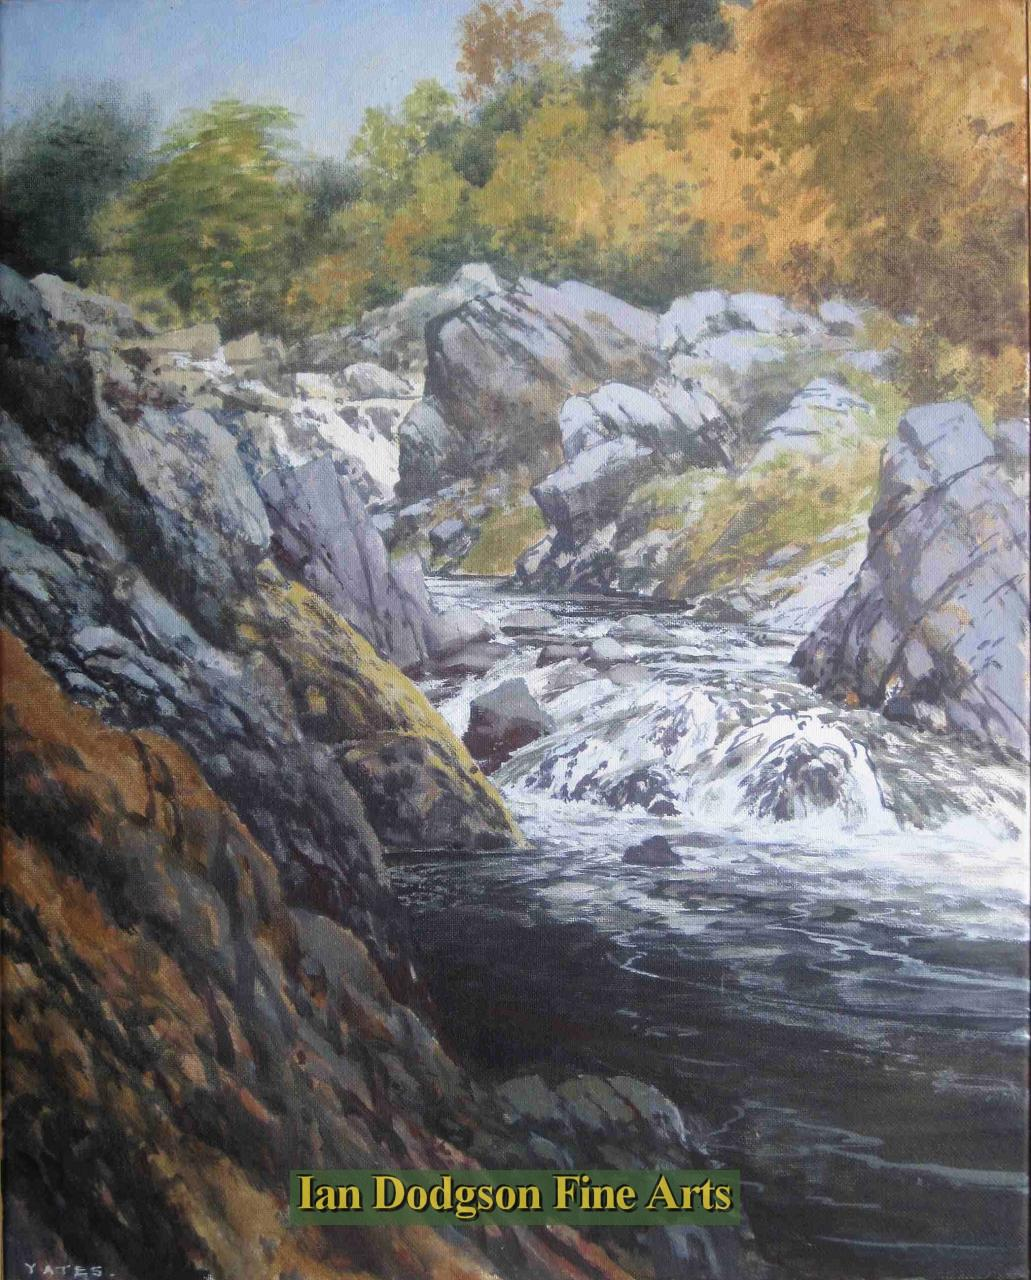 Rocks and Water (Afon Machno) by Jeremy Yates